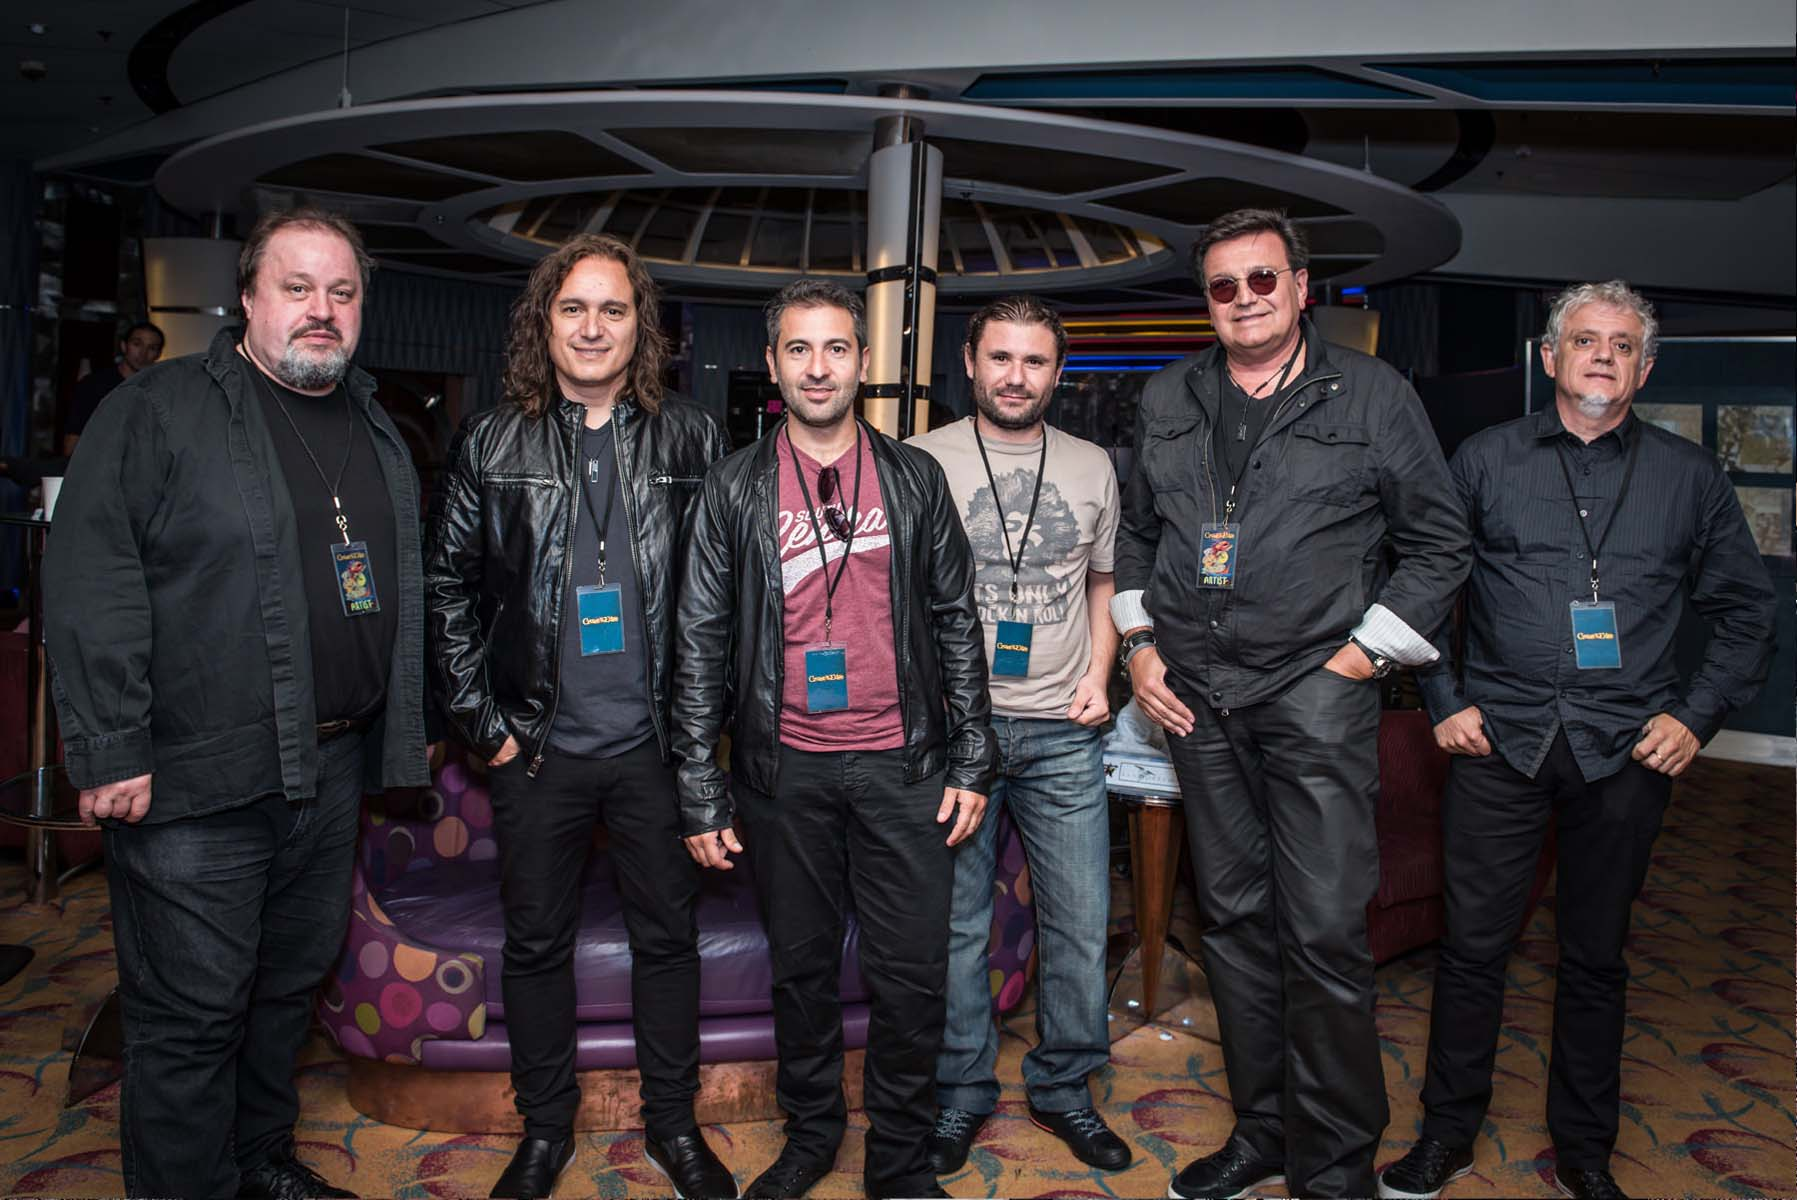 Meet and Greet Gallery: Bad Dreams Experience during Cruise to the Edge 2017